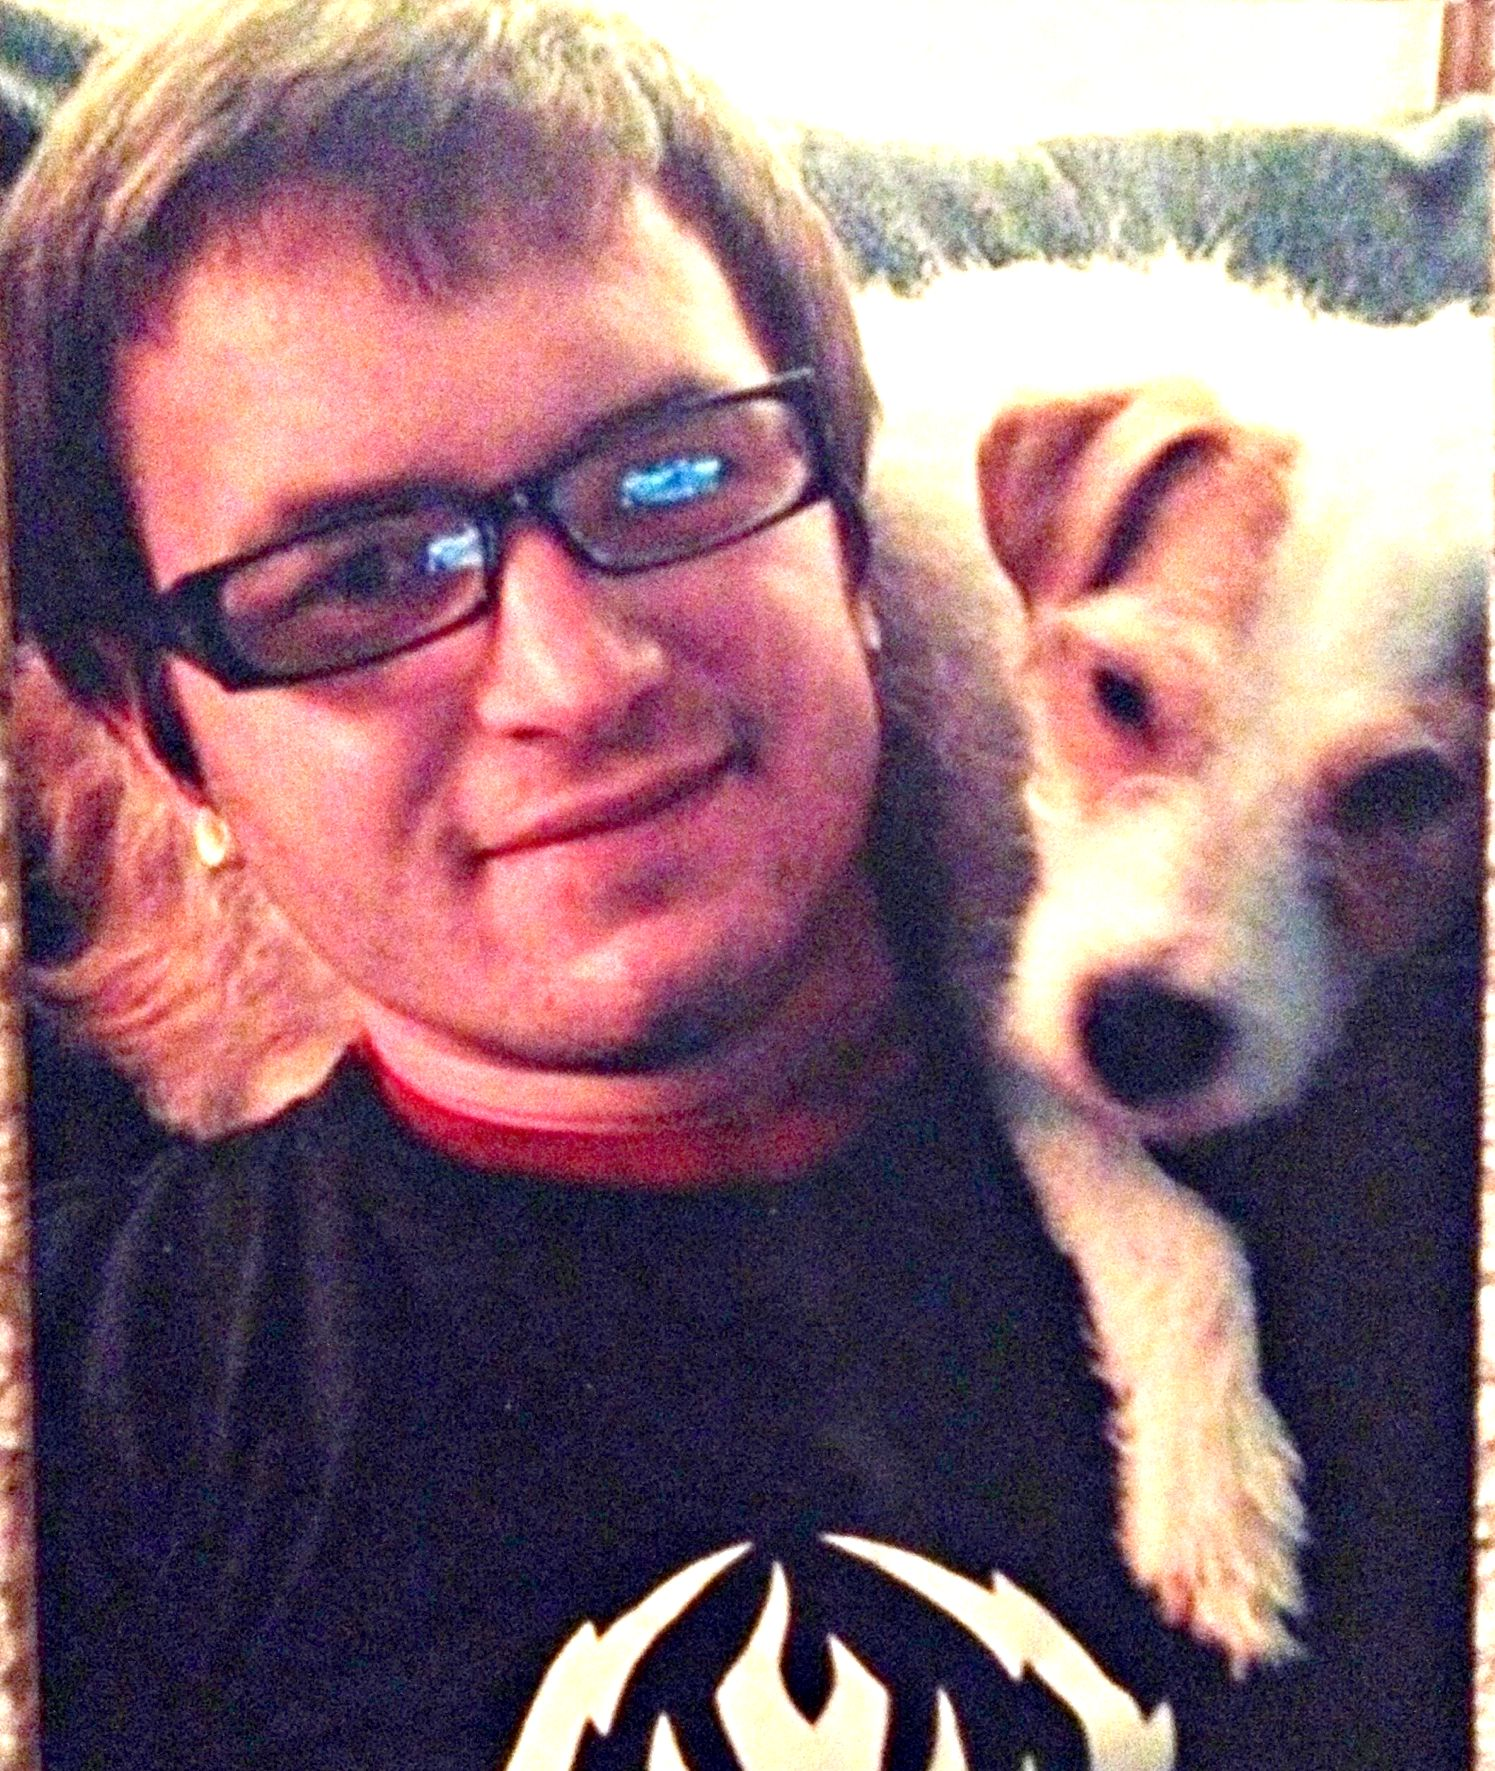 zach with dog cropped.jpg